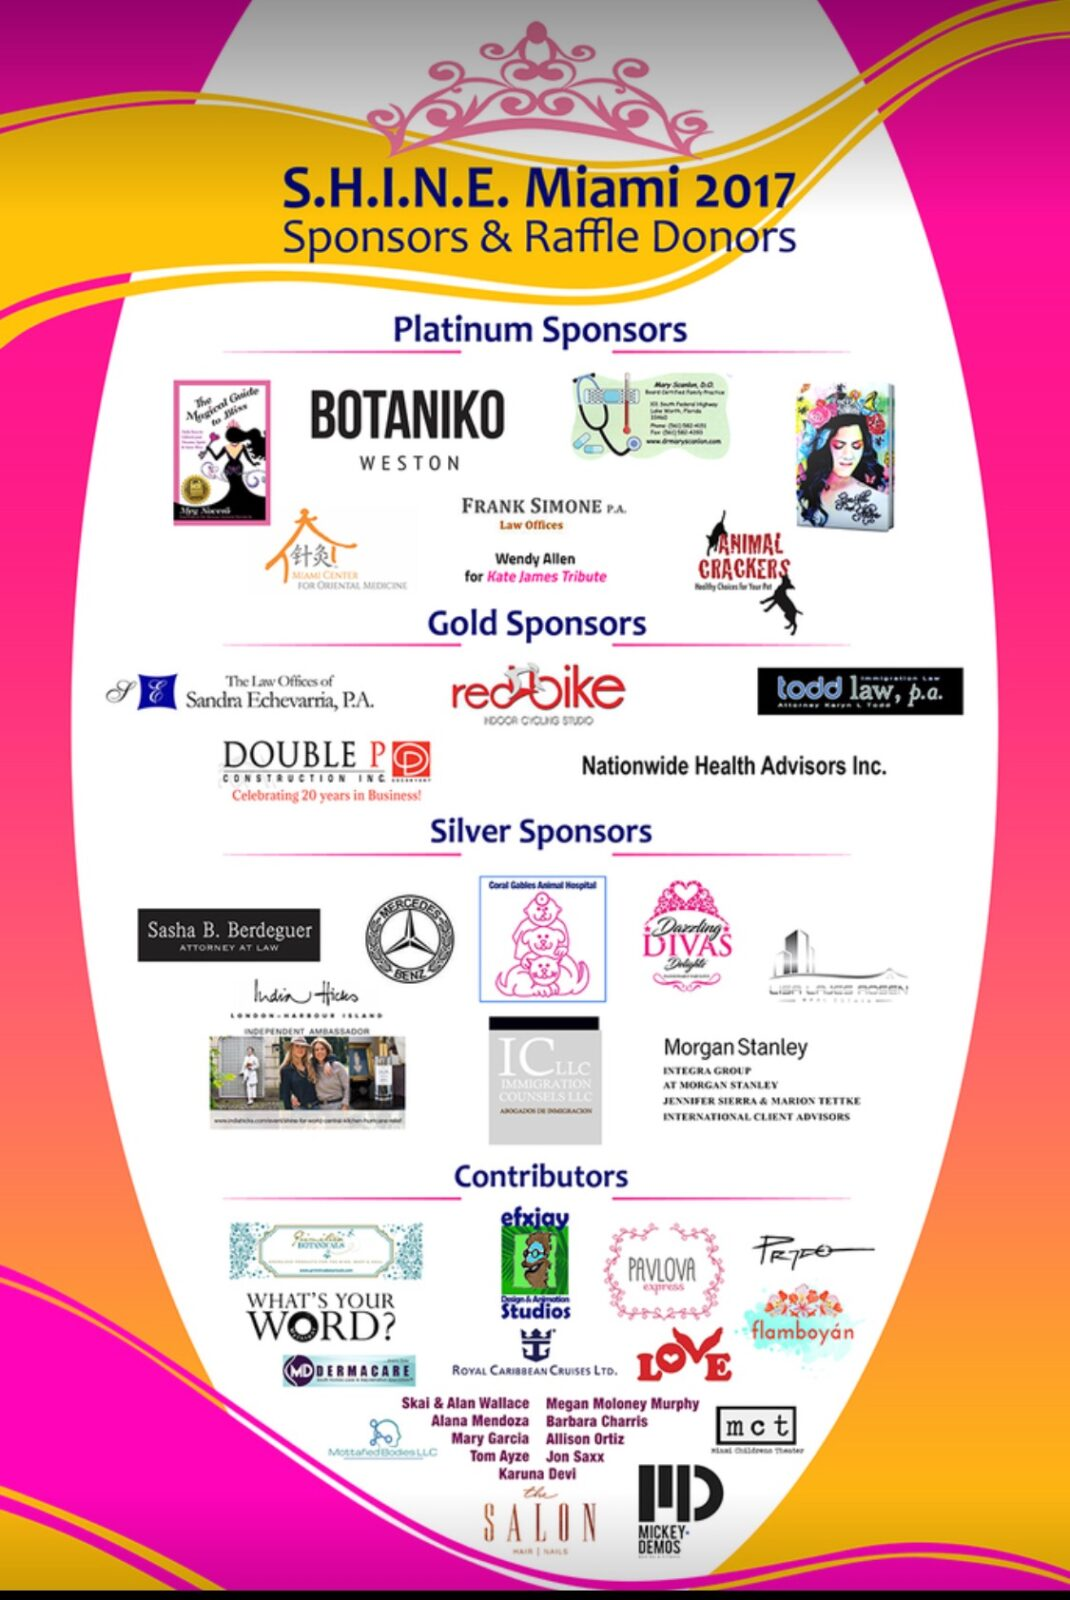 S.H.I.N.E. 2017: Amazing and Enticing Raffle Sponsors and Contributors